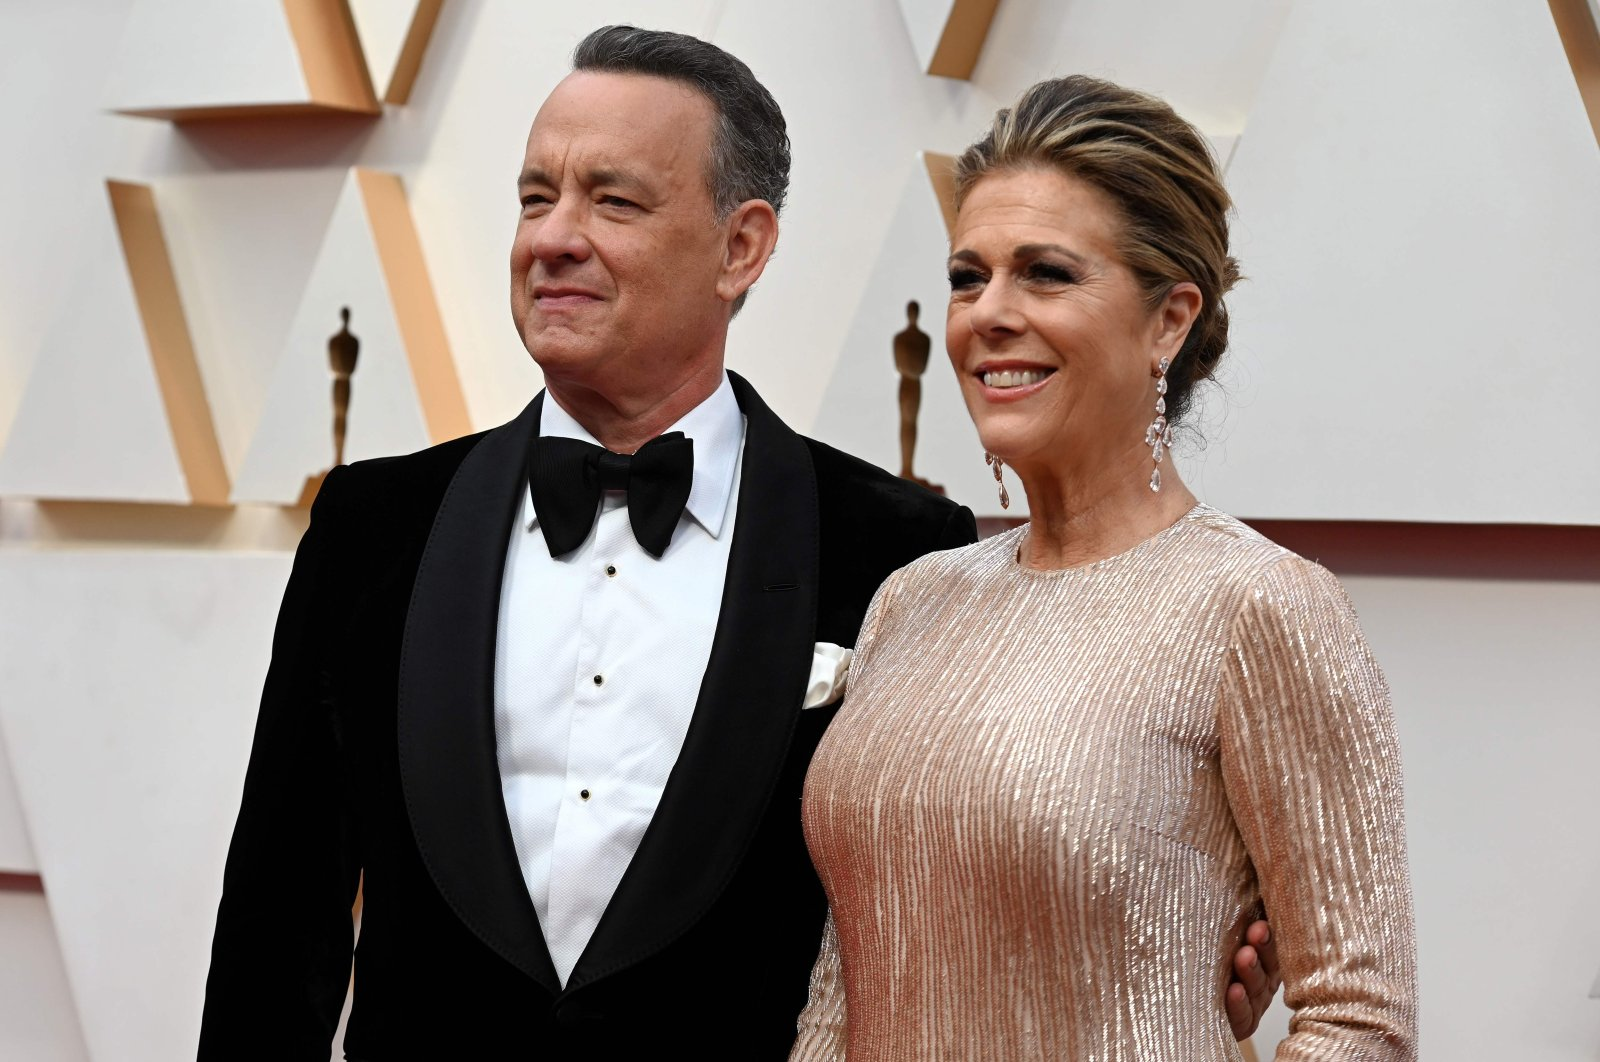 This file photo taken on February 9, 2020 shows US actor Tom Hanks and wife Rita Wilson (R) arriving for the 92nd Oscars at the Dolby Theatre in Hollywood, California. (AFP Photo)